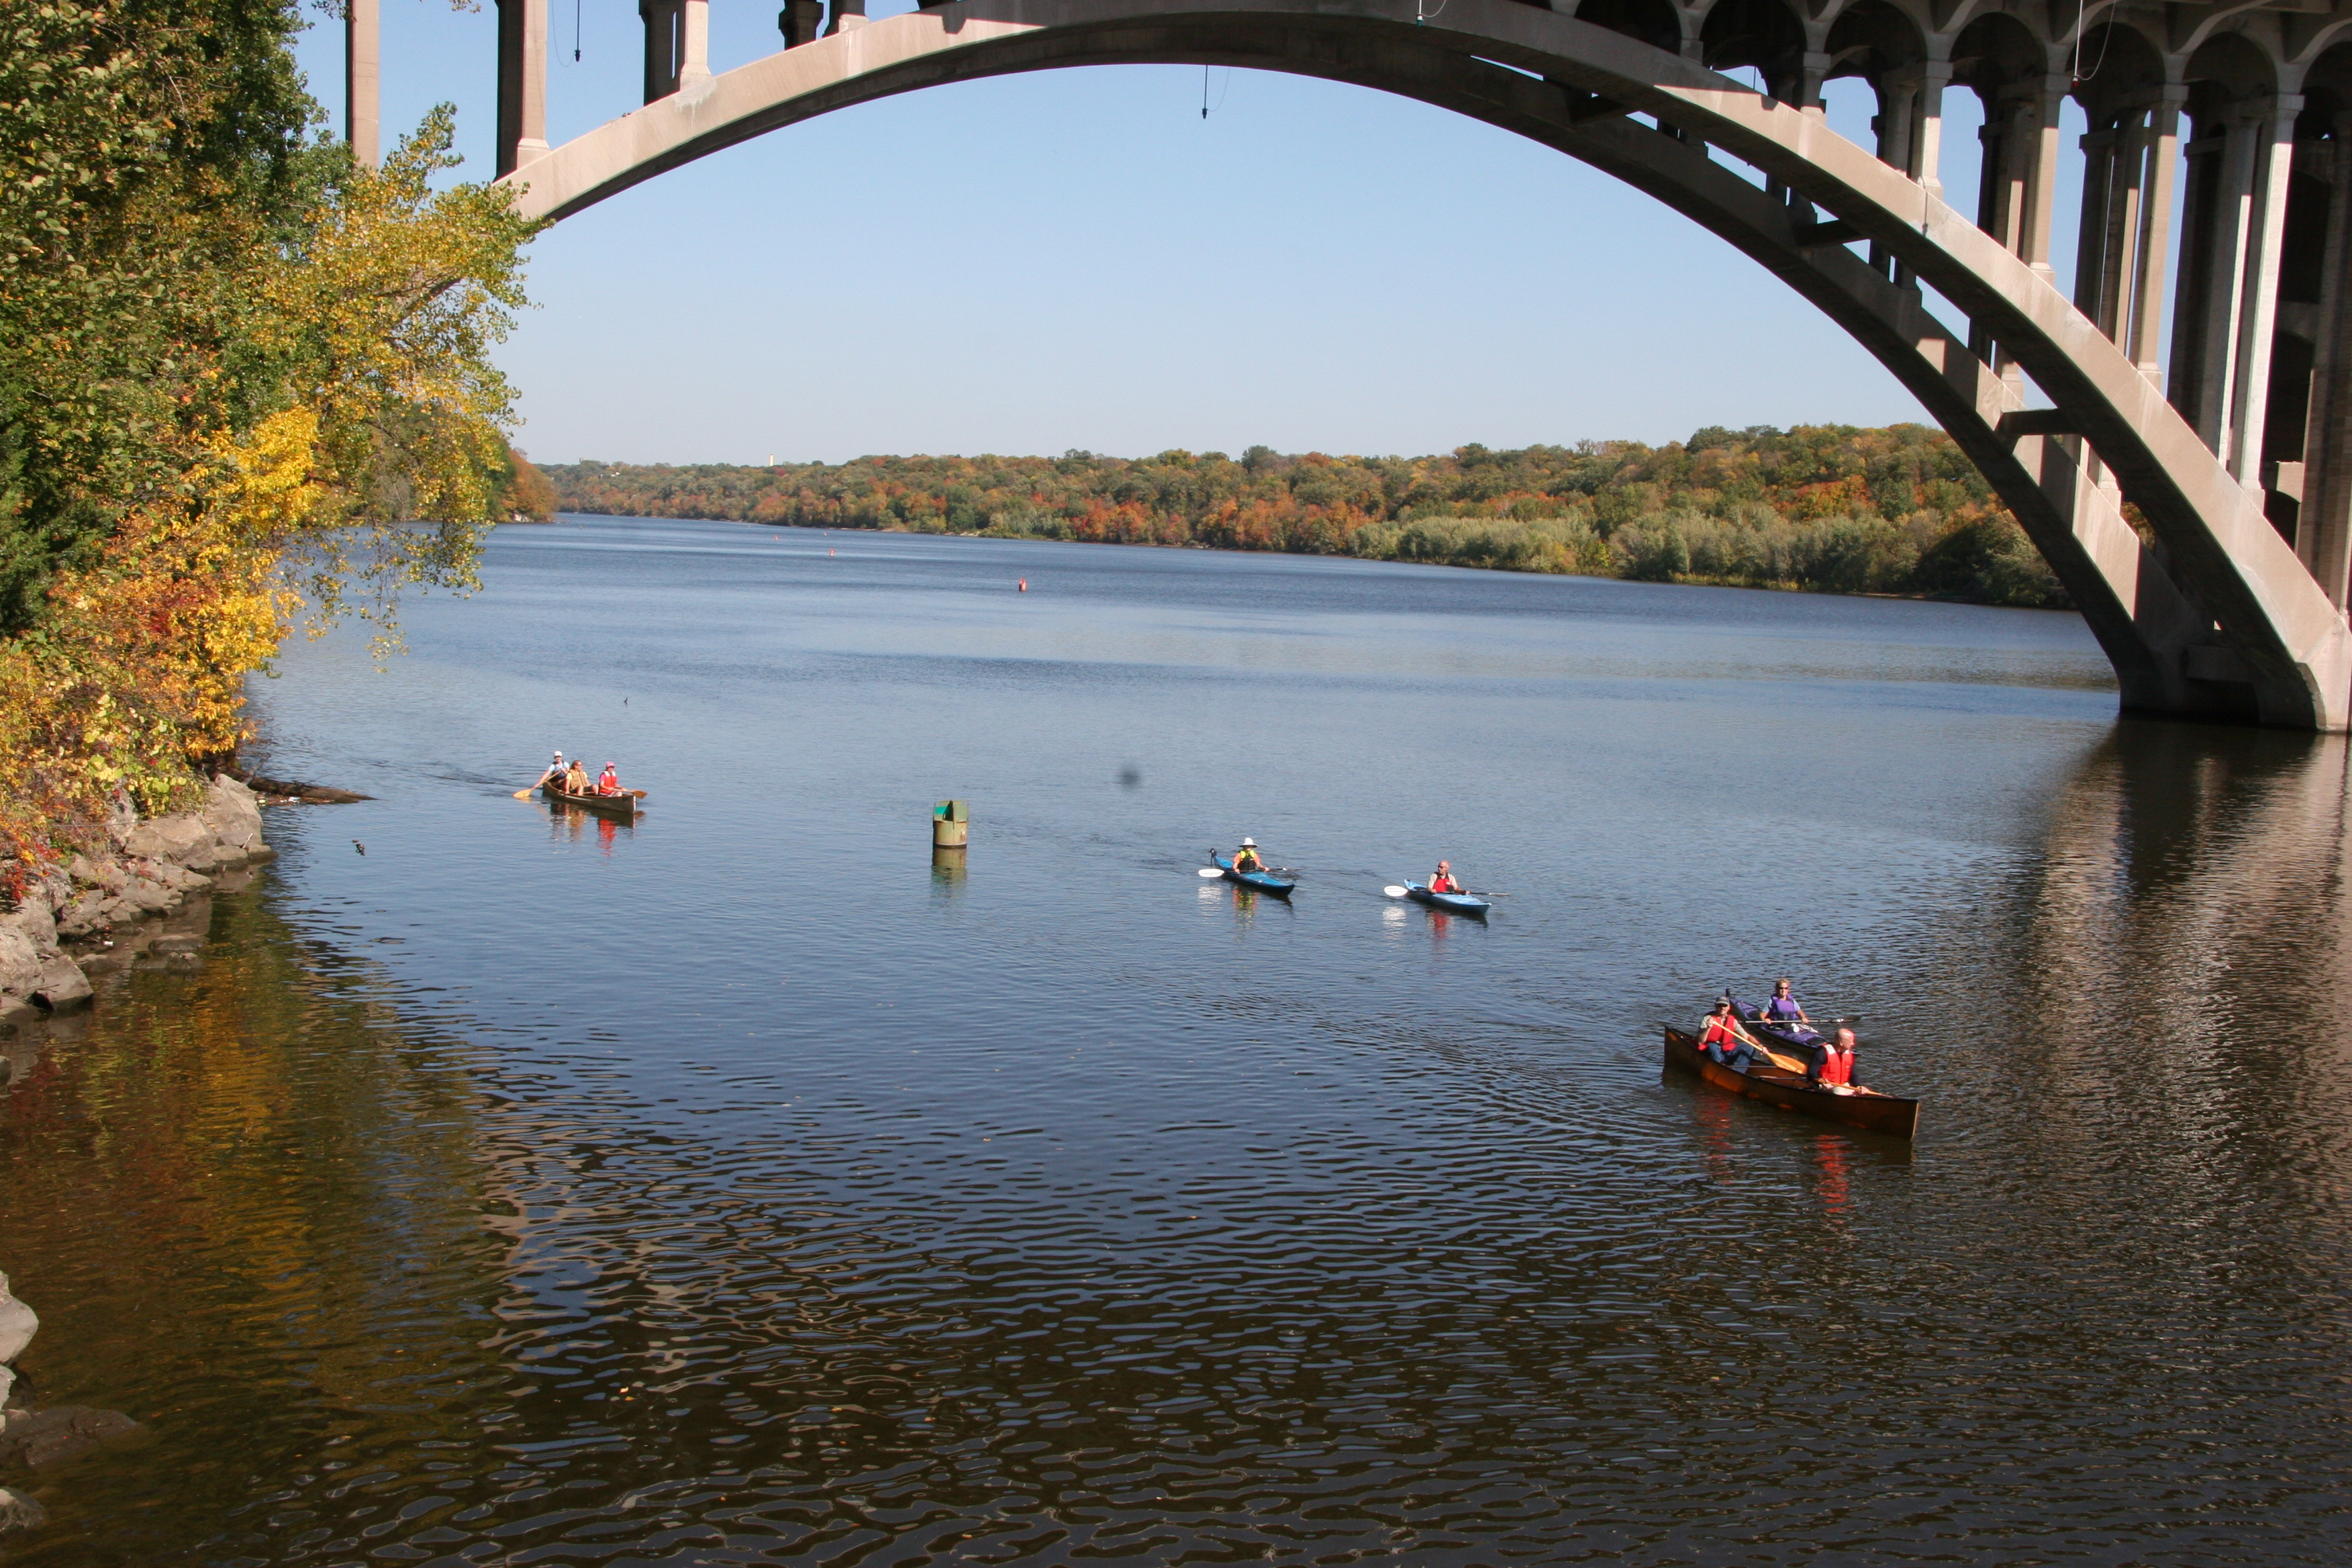 The Ford Parkway Bridge across the Mississippi connecting Minneapolis and Saint Paul in the Mississippi National River and Recreation Area. Image via National Park Service.